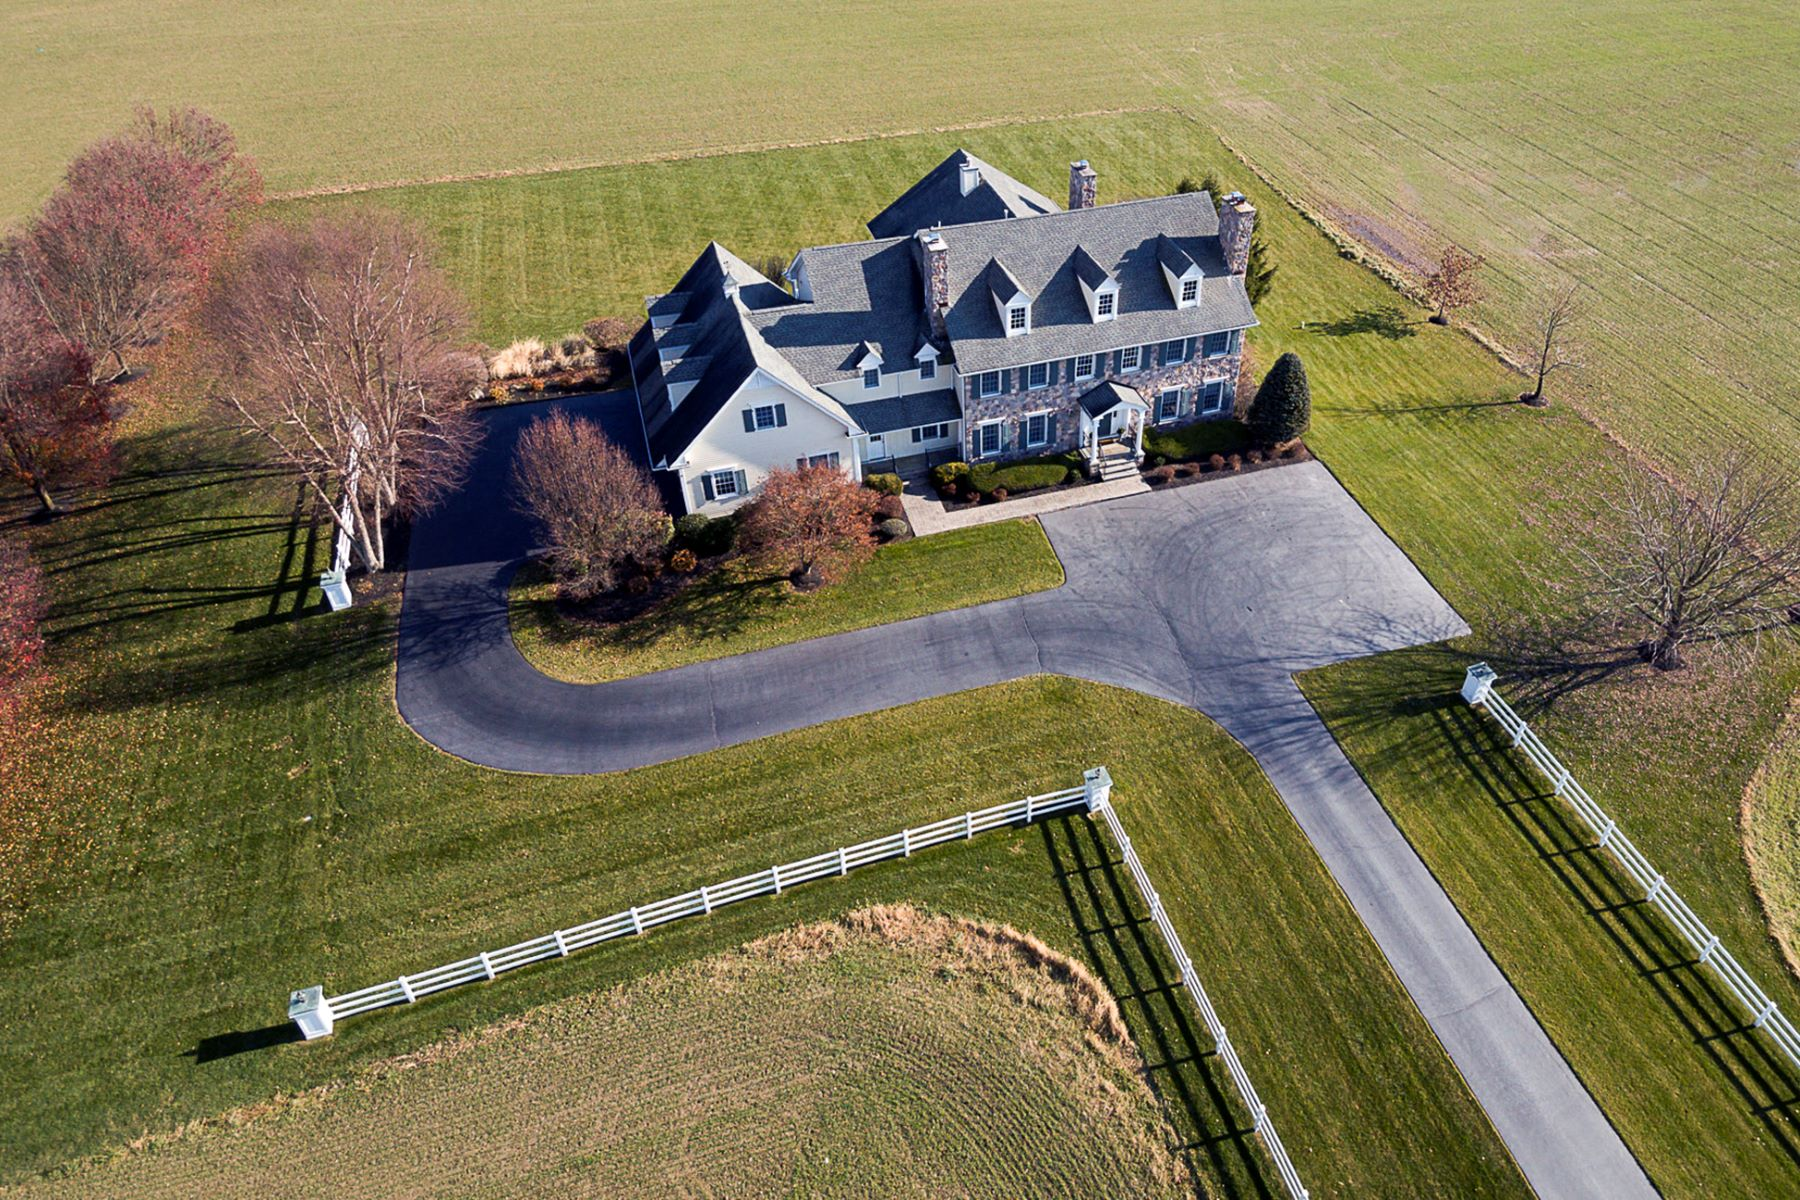 أراضي للـ Sale في 6+ Acres - Enchanting Custom Home 81 Petty Road Cranbury, New Jersey 08512 United Statesفي/حول: Cranbury Township